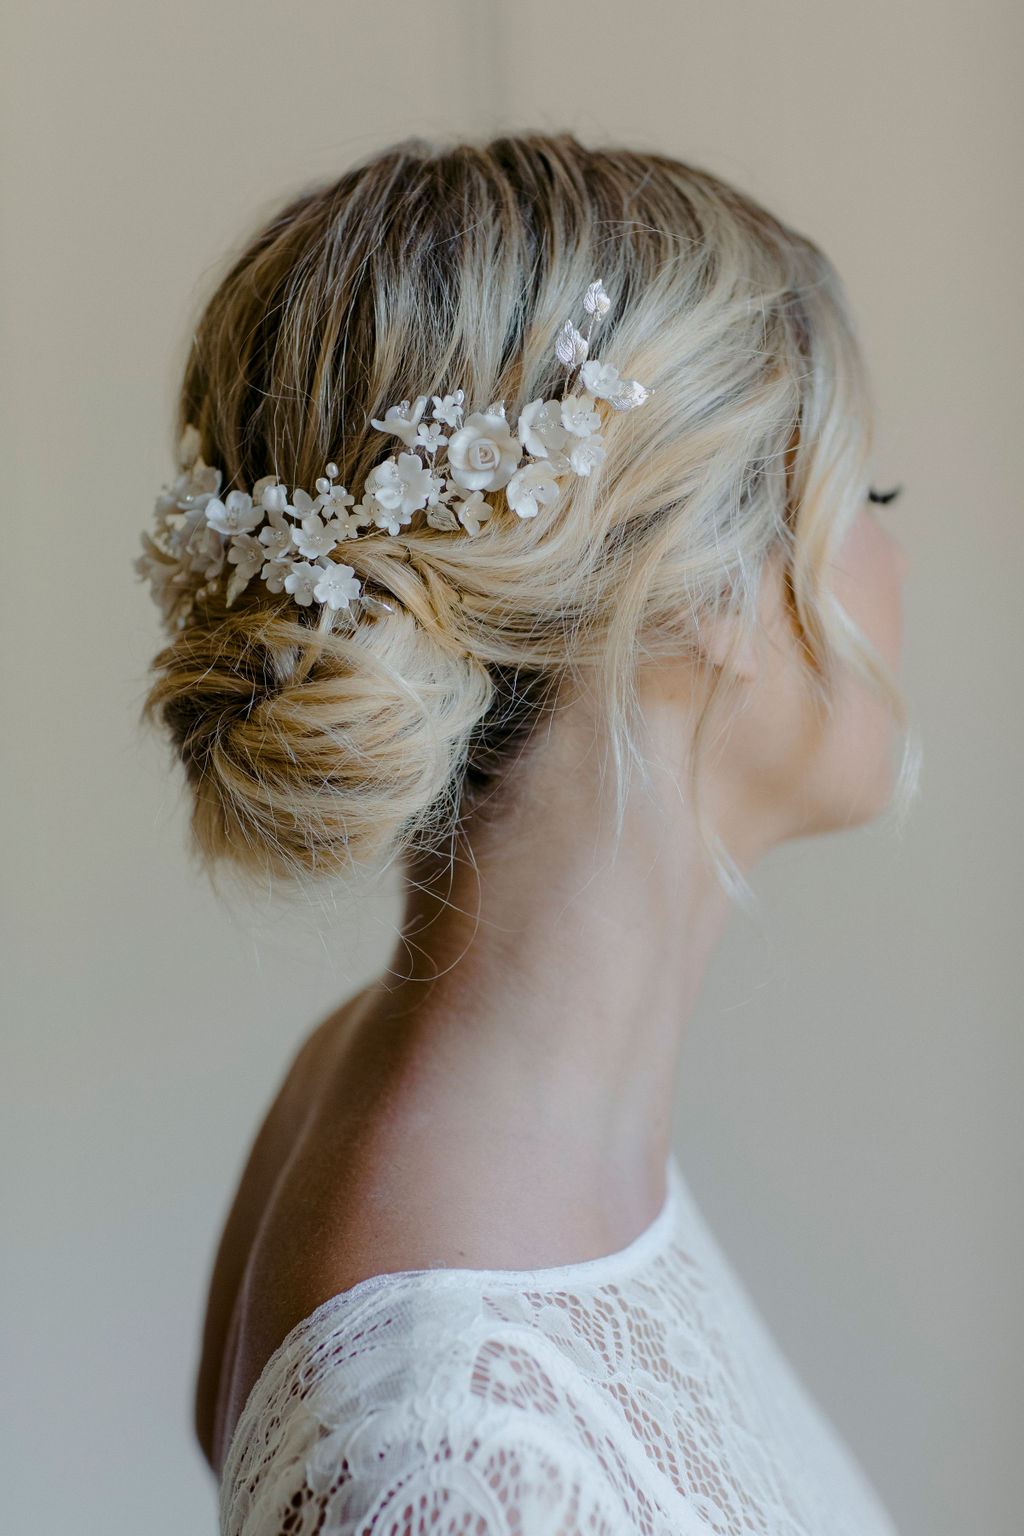 GARDENIA WEDDING HEADPIECE WITH FLOWERS by TANIA MARAS featured on LOVE FIND CO.